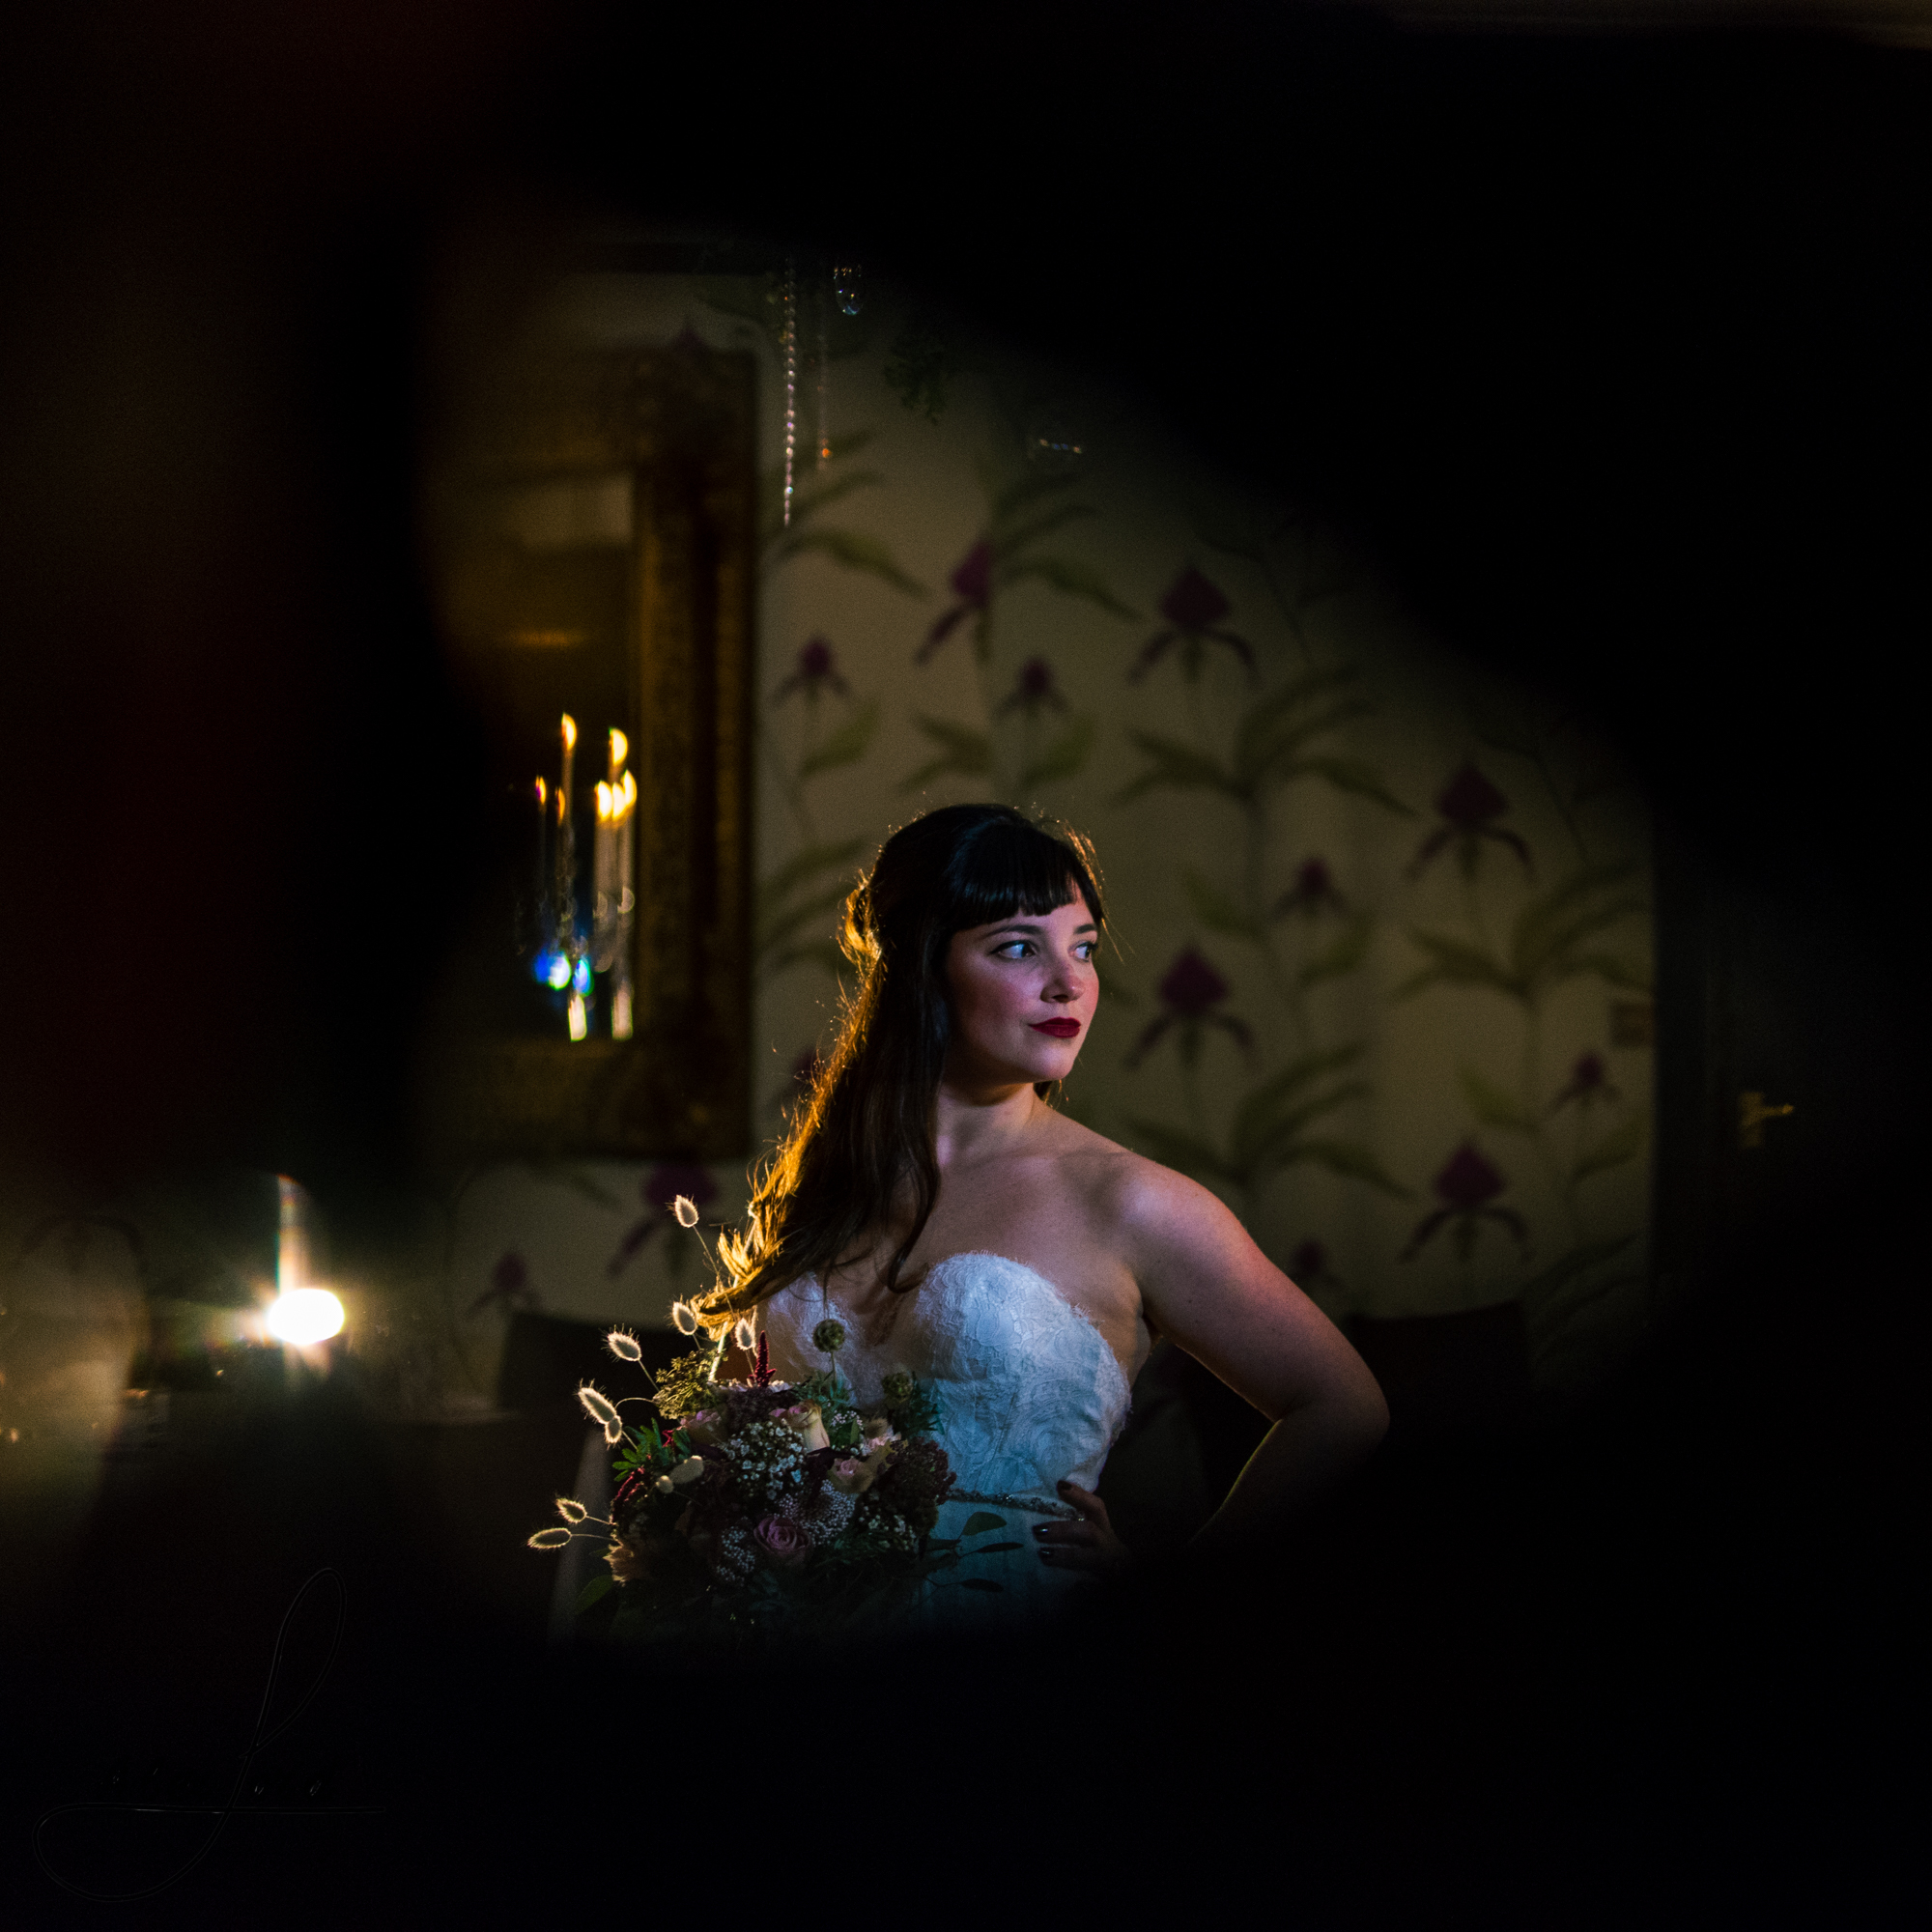 black vignette surrounds the bride standing surrounded by candles